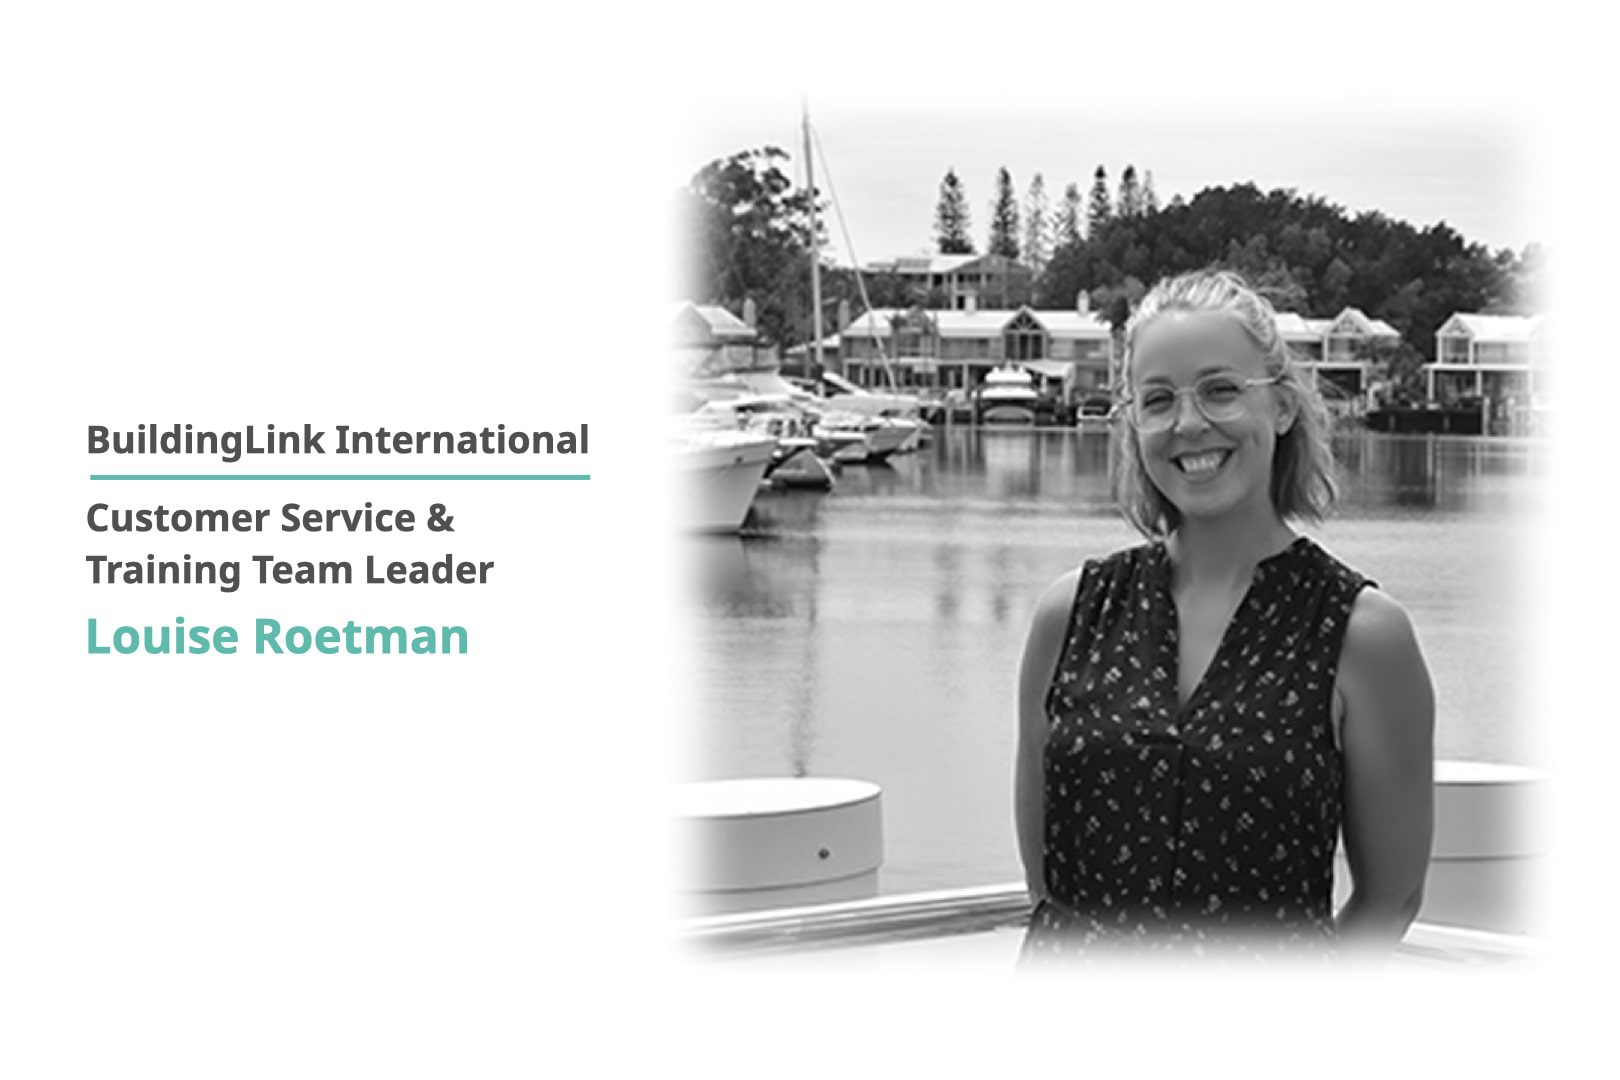 Interview with BuildingLink's: Louise Roetman, Customer Service and Training Team Leader